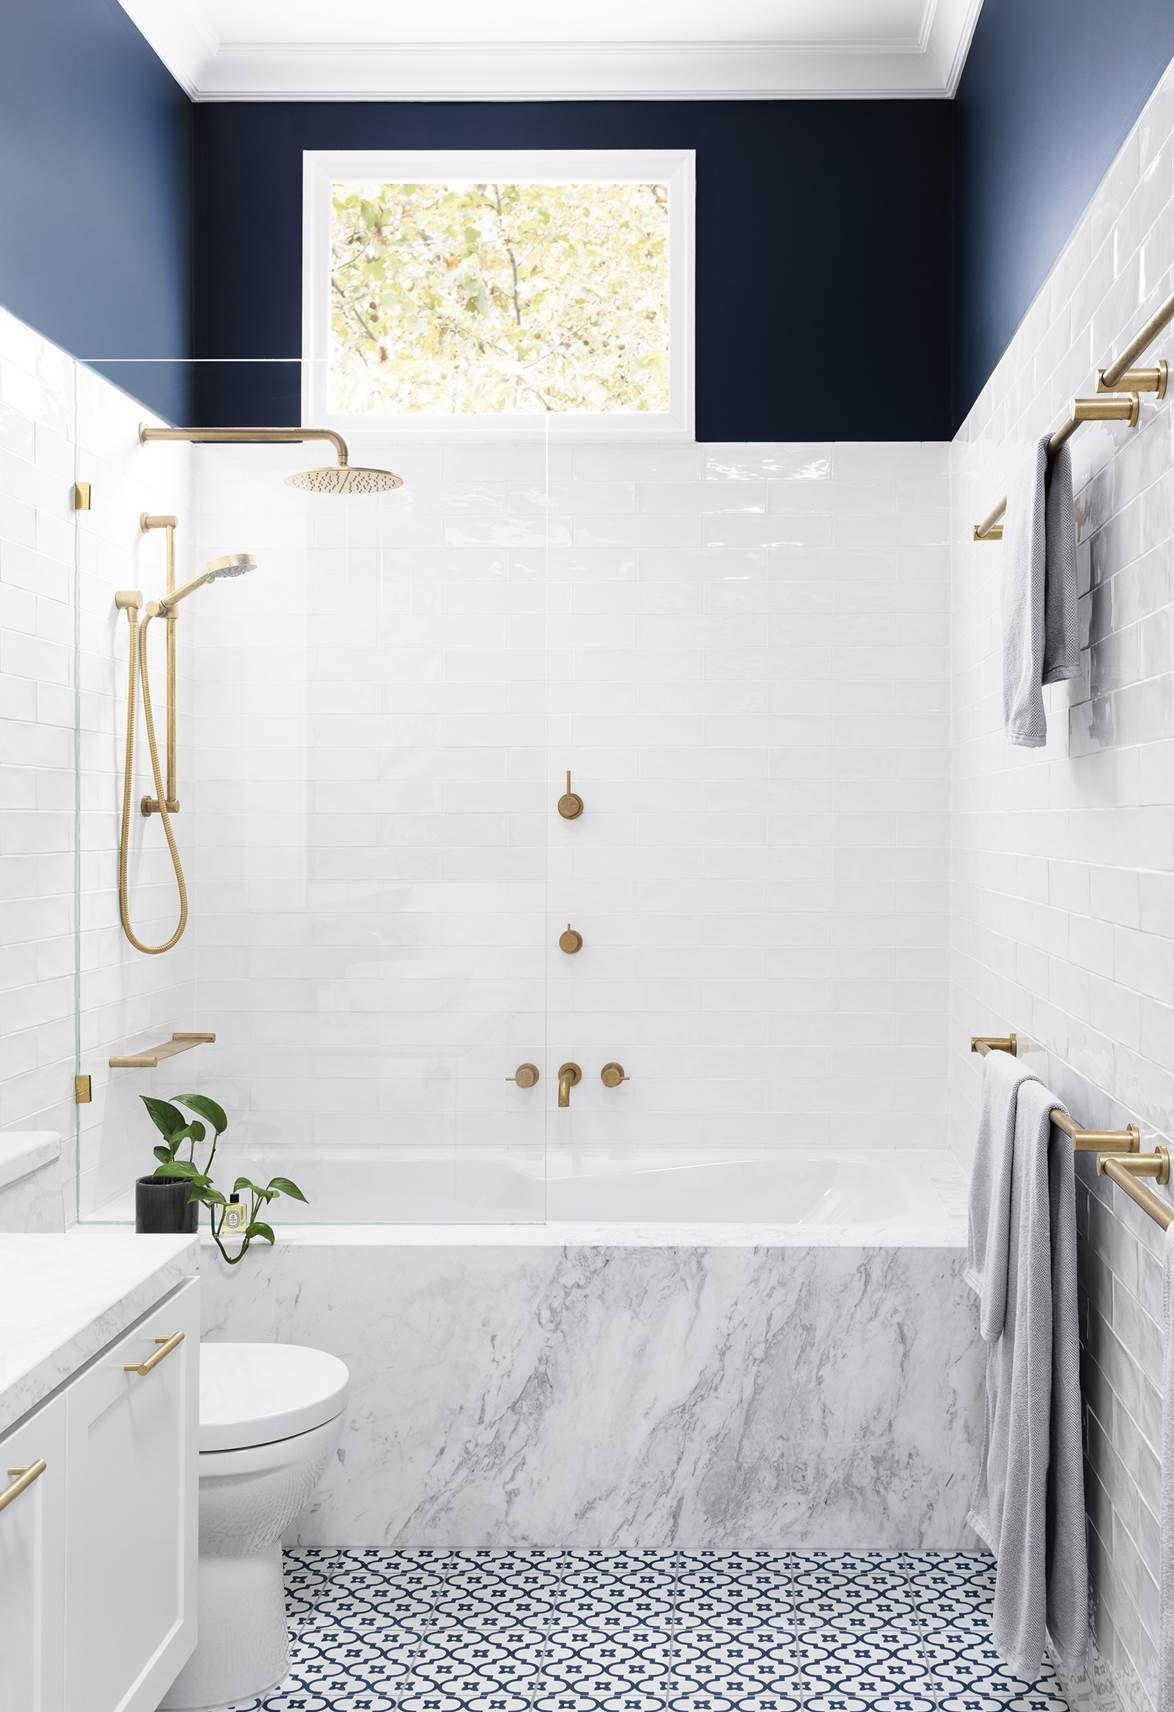 15 bathrooms with clever ideas to steal is part of Bathtub design - Make a splash with your bathroom renovation with inspiration from these 15 clever spaces